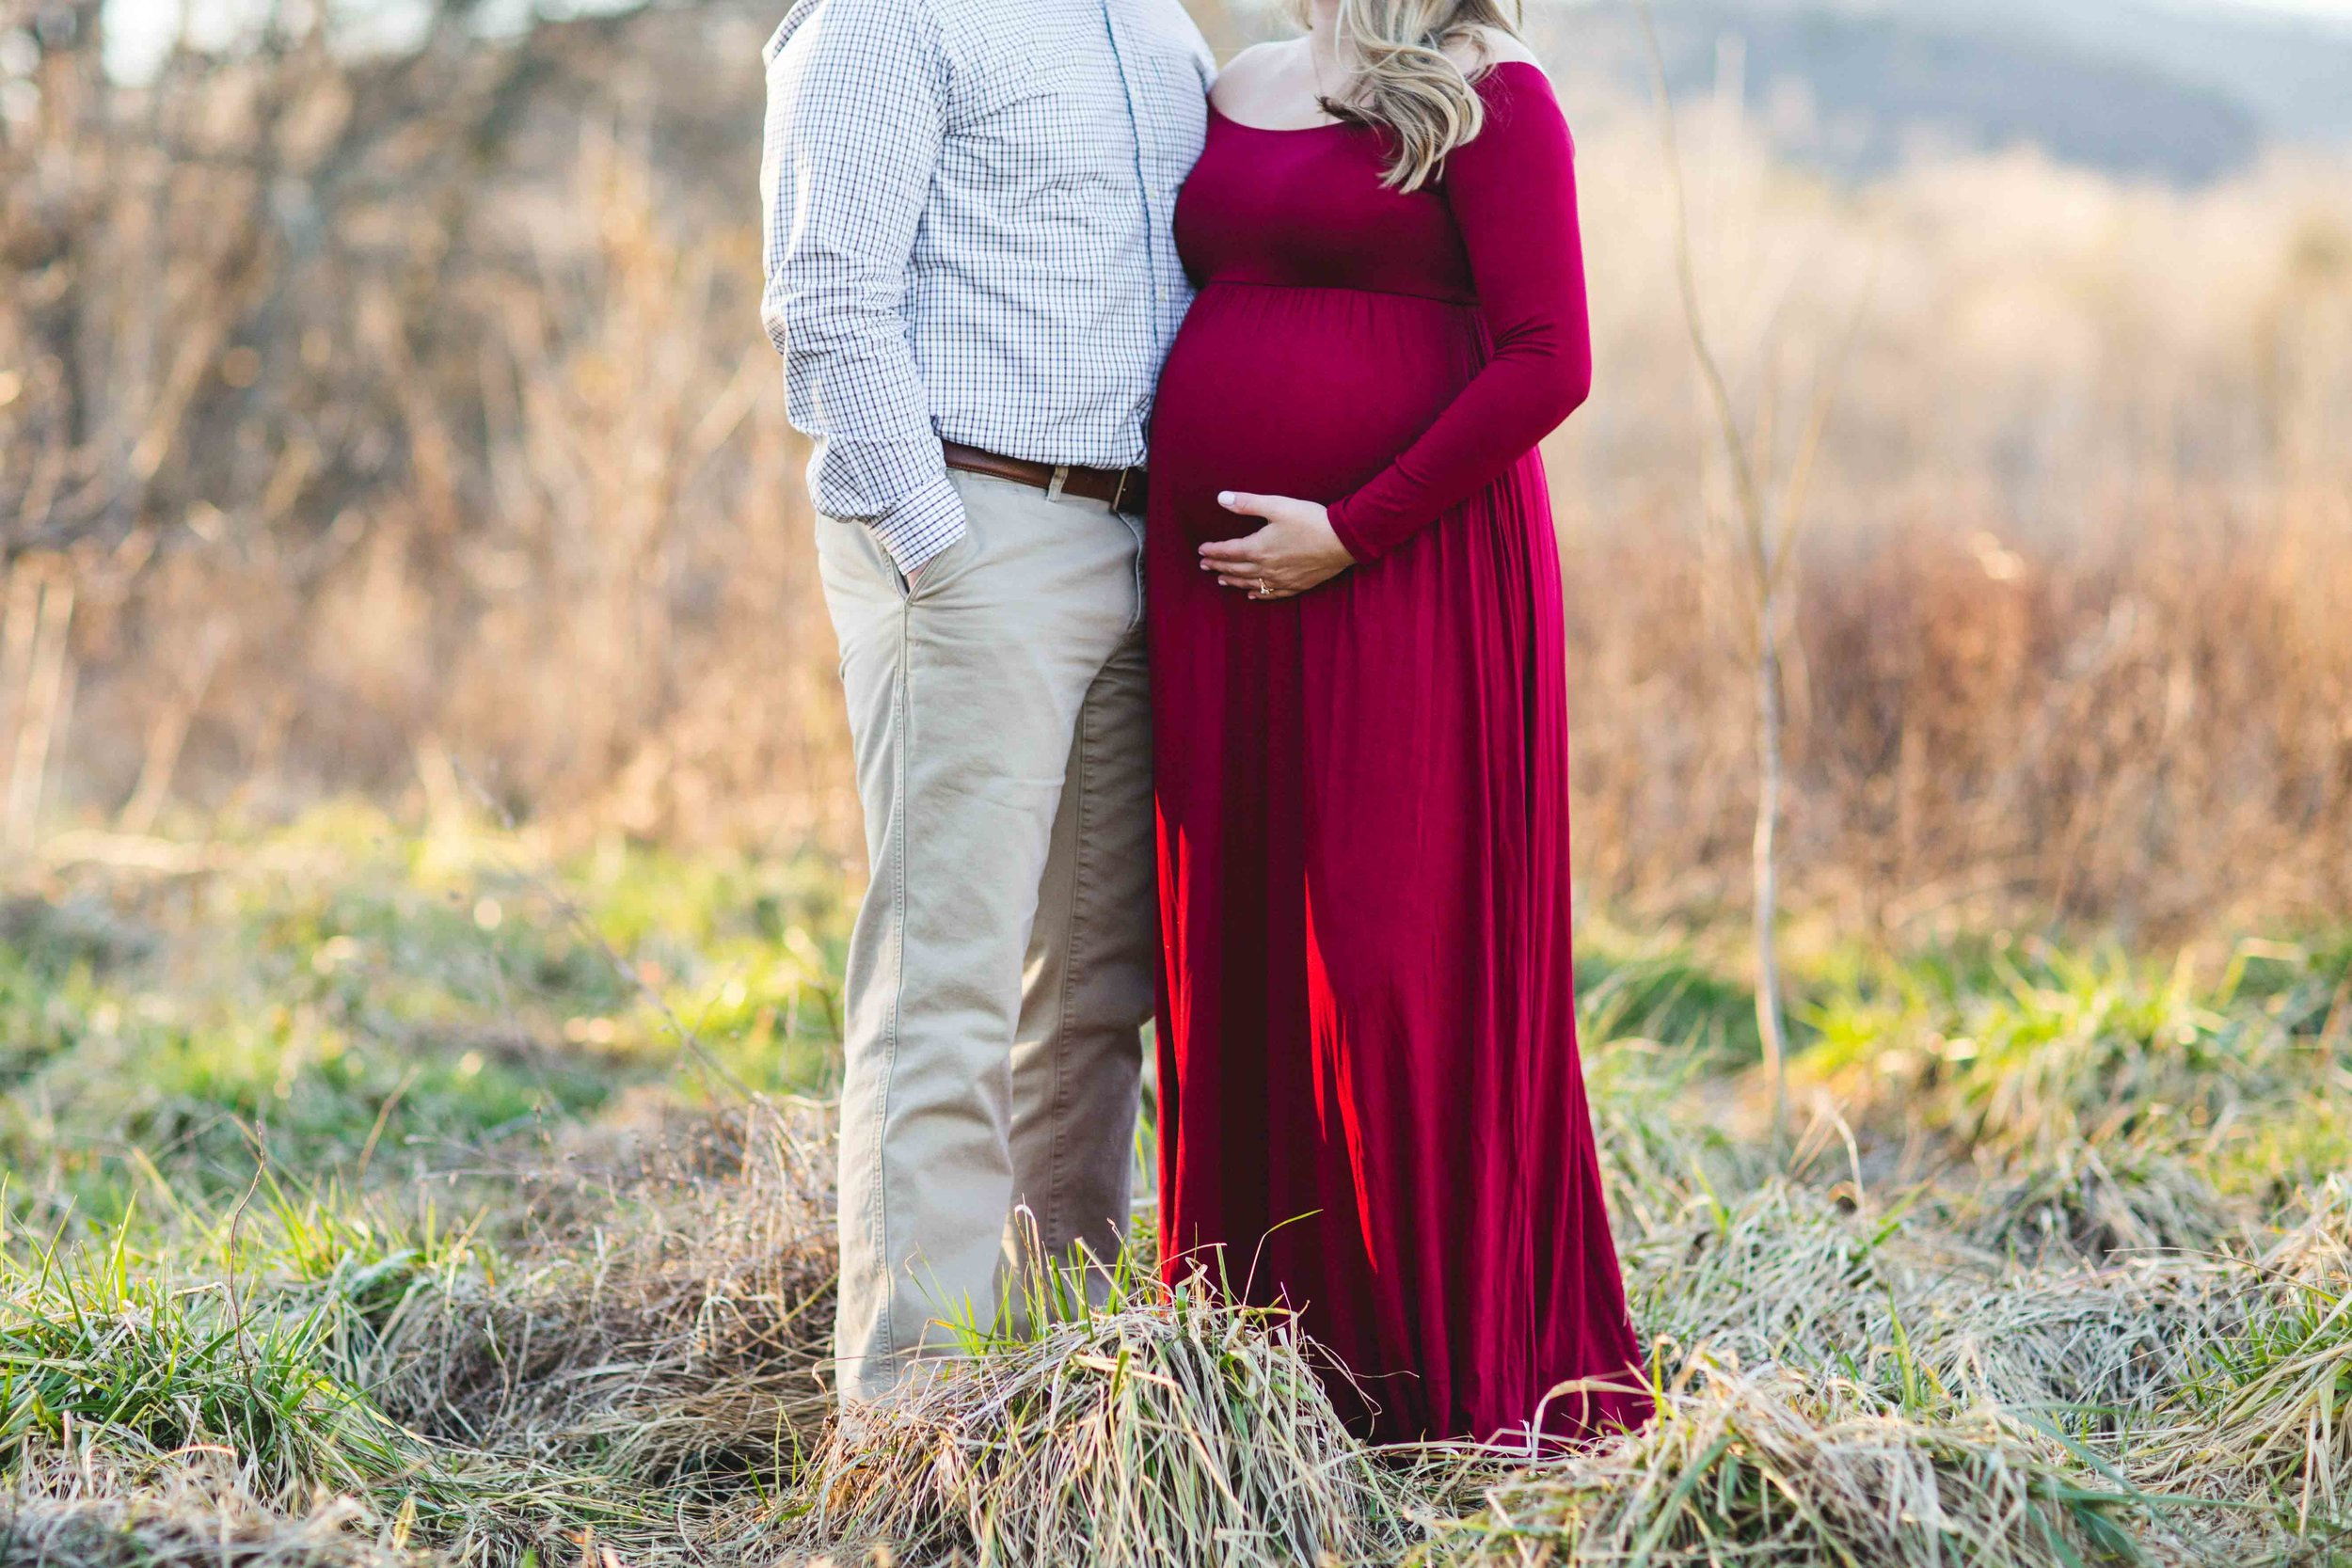 roanoke-maternity-photographer-24.jpg